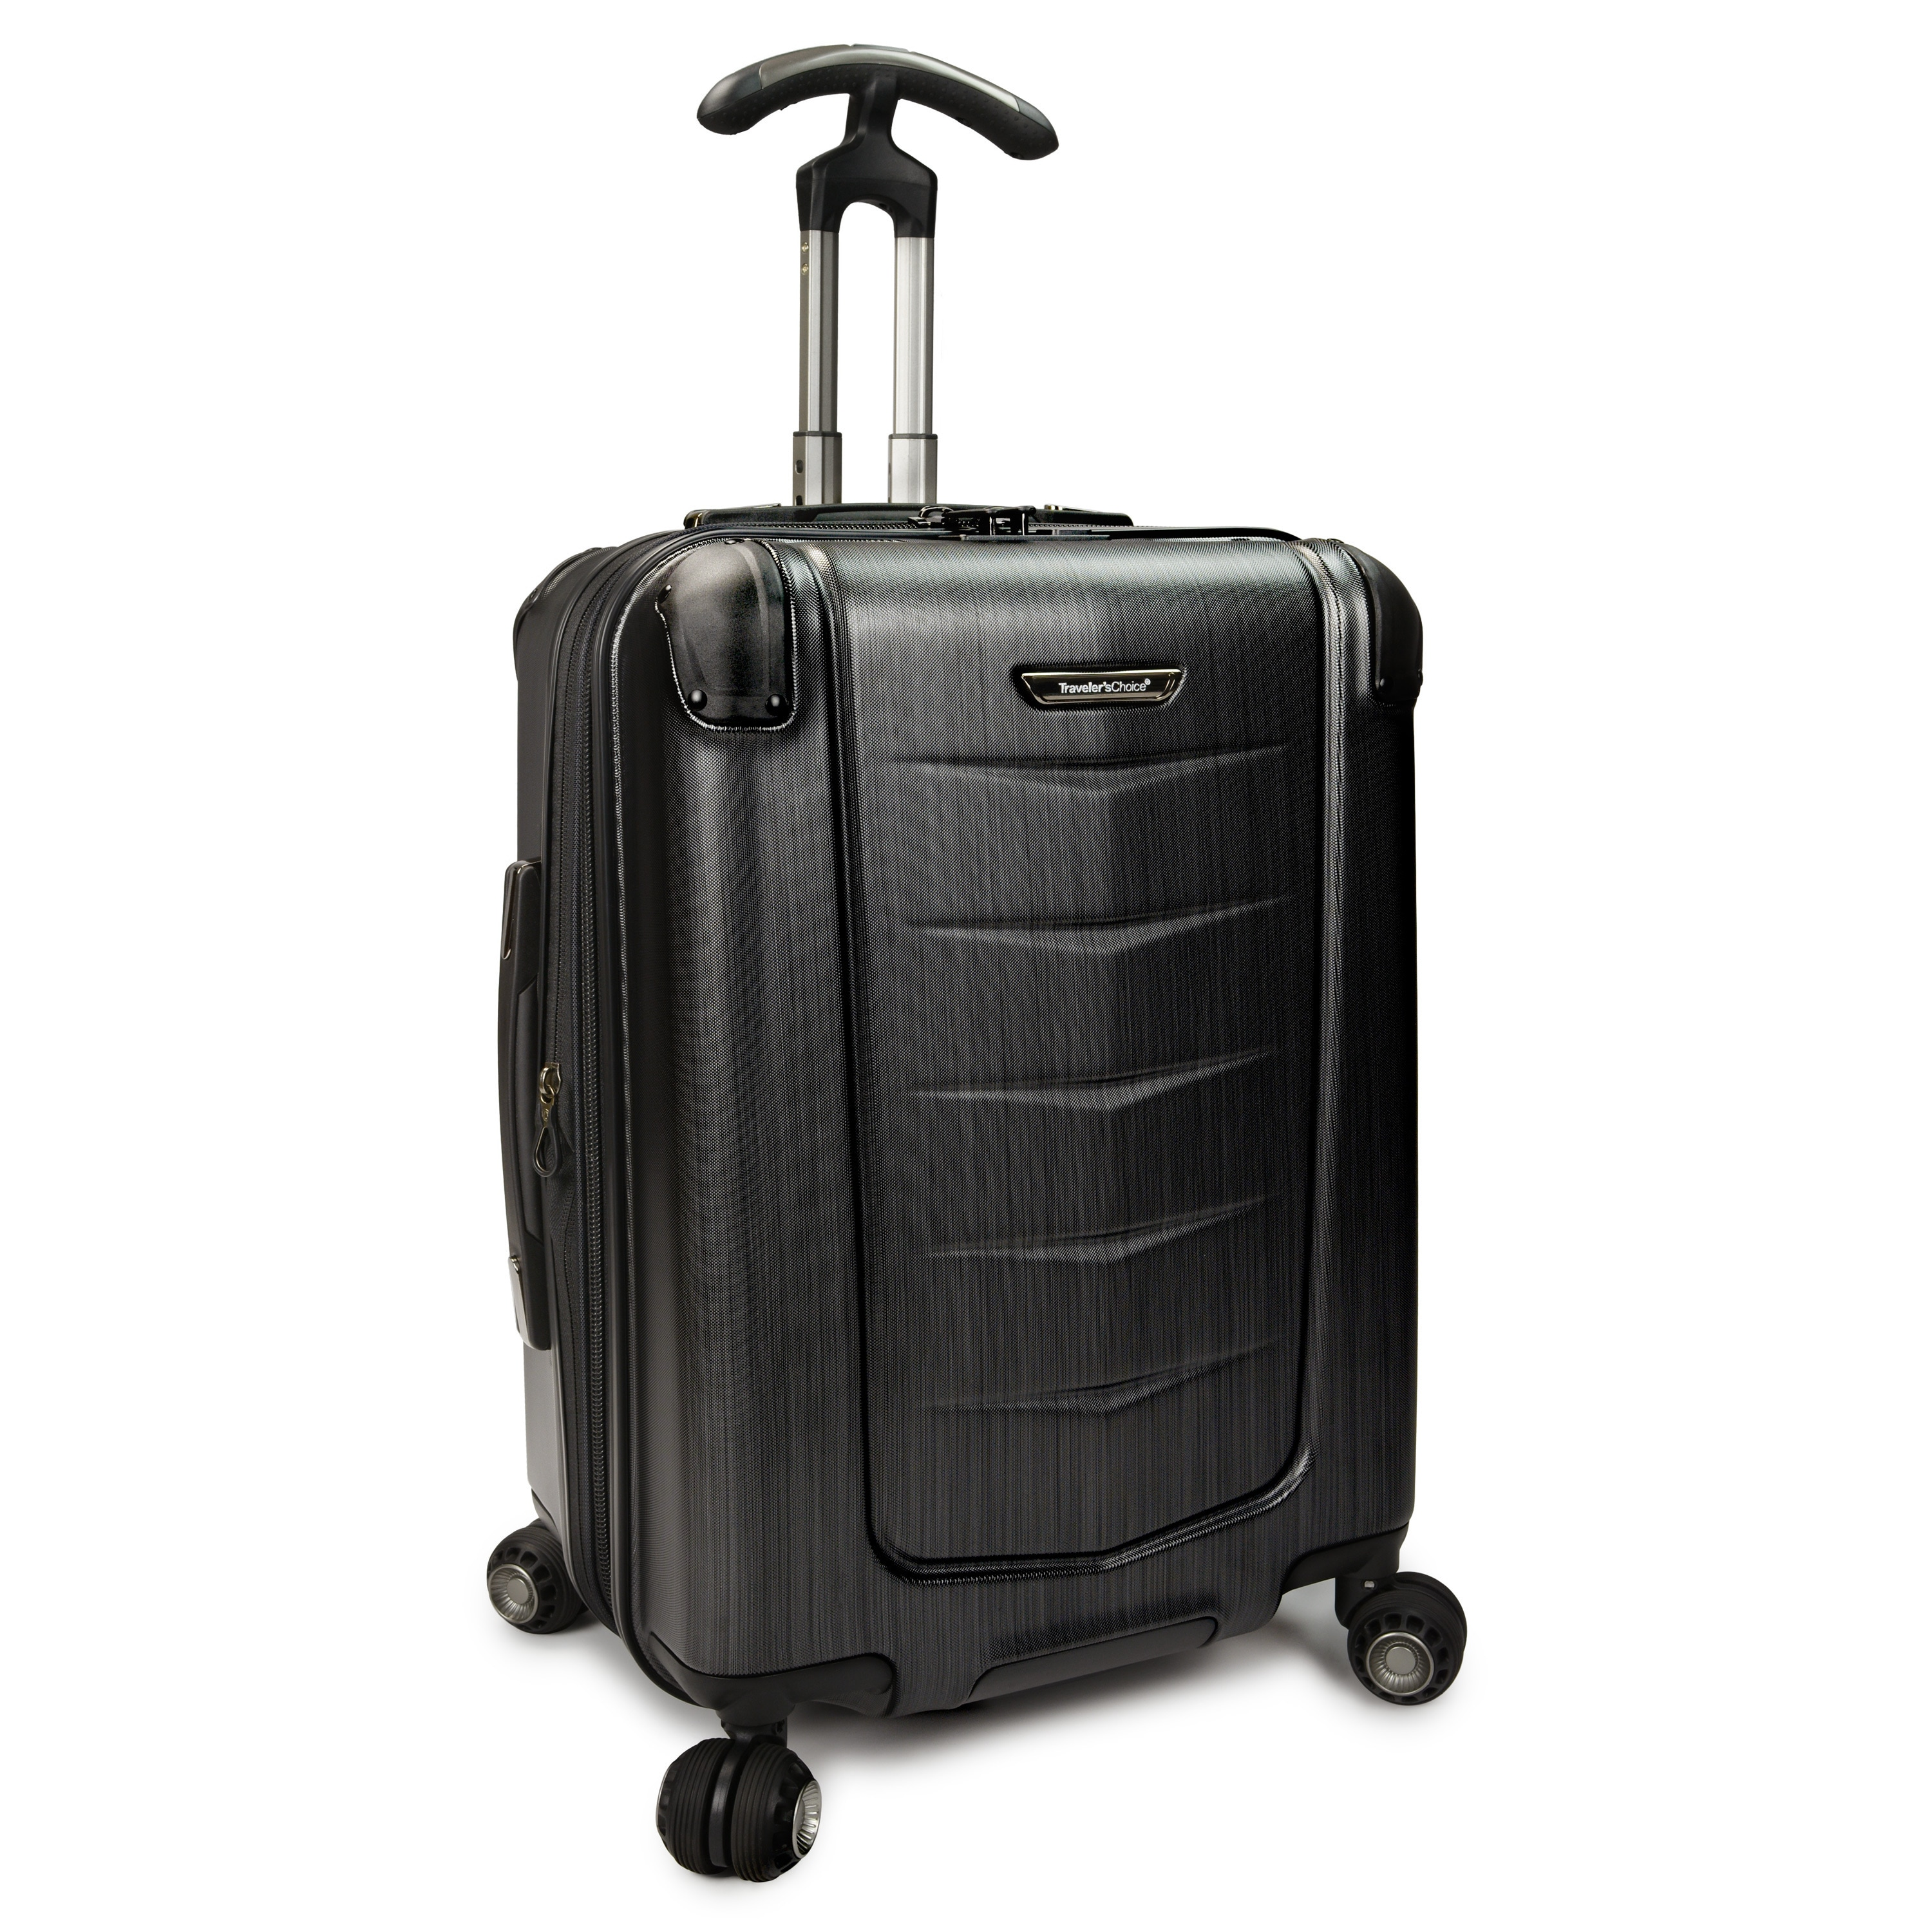 cdb15c534701 Traveler's Choice Silverwood 21-inch Polycarbonate Hardside Carry On  Spinner Suitcase